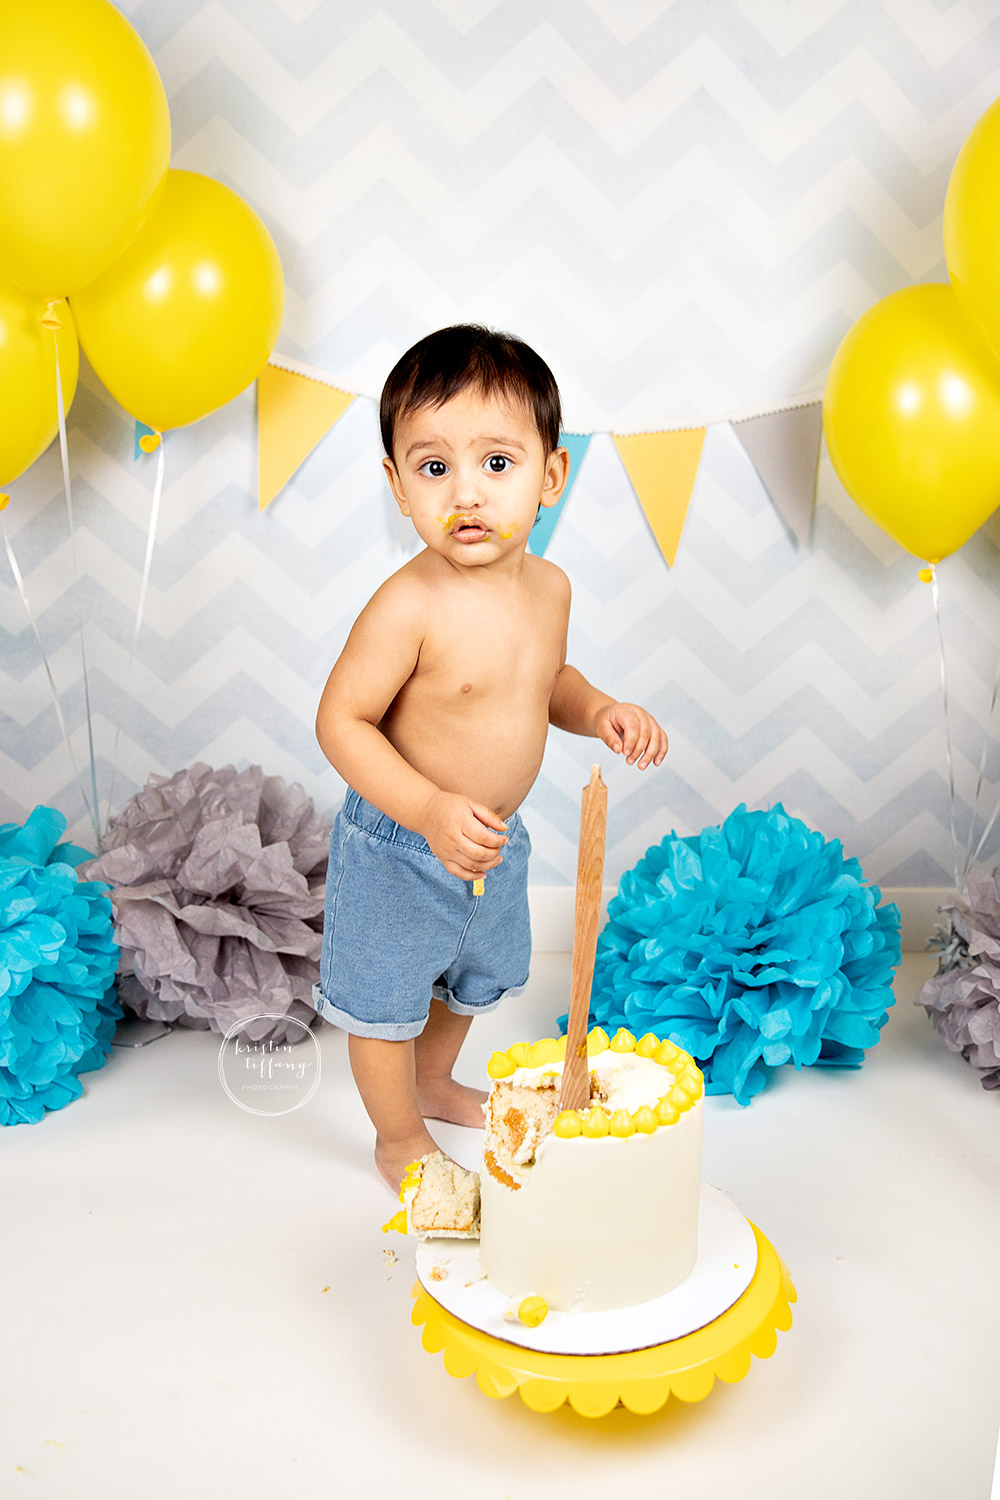 a photo of a baby boy at his cake smash session